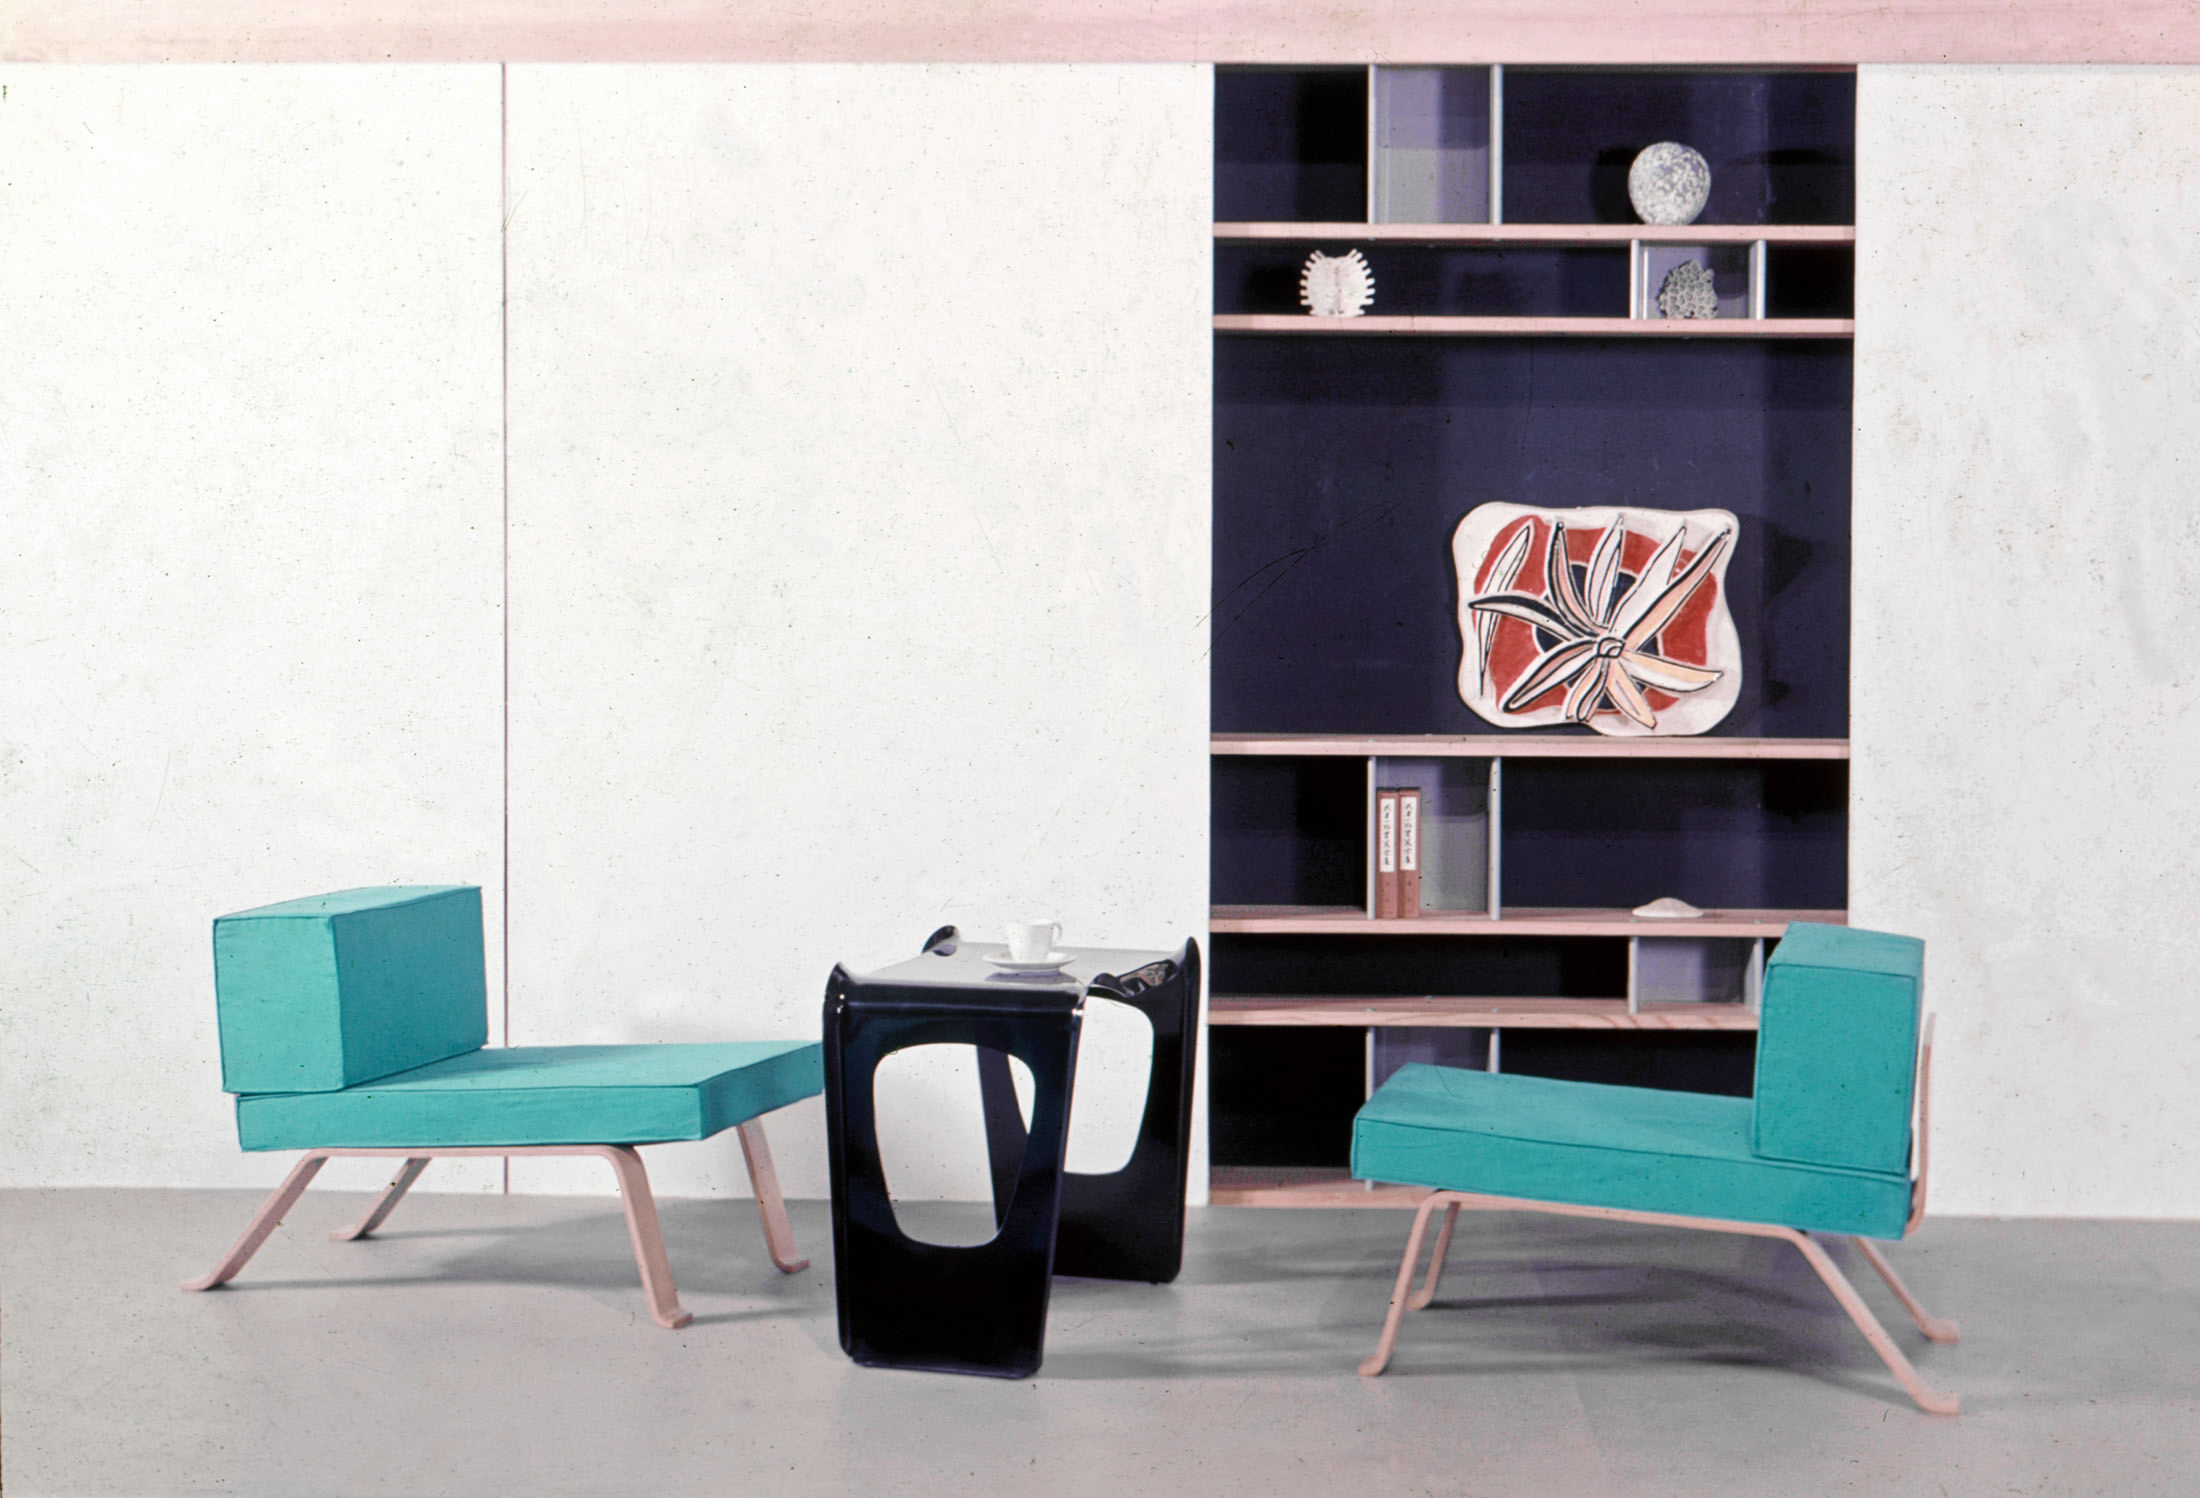 Charlotte Perriand's 1955 design for a reception room. Courtesy of Louis Vuitton Fondation.